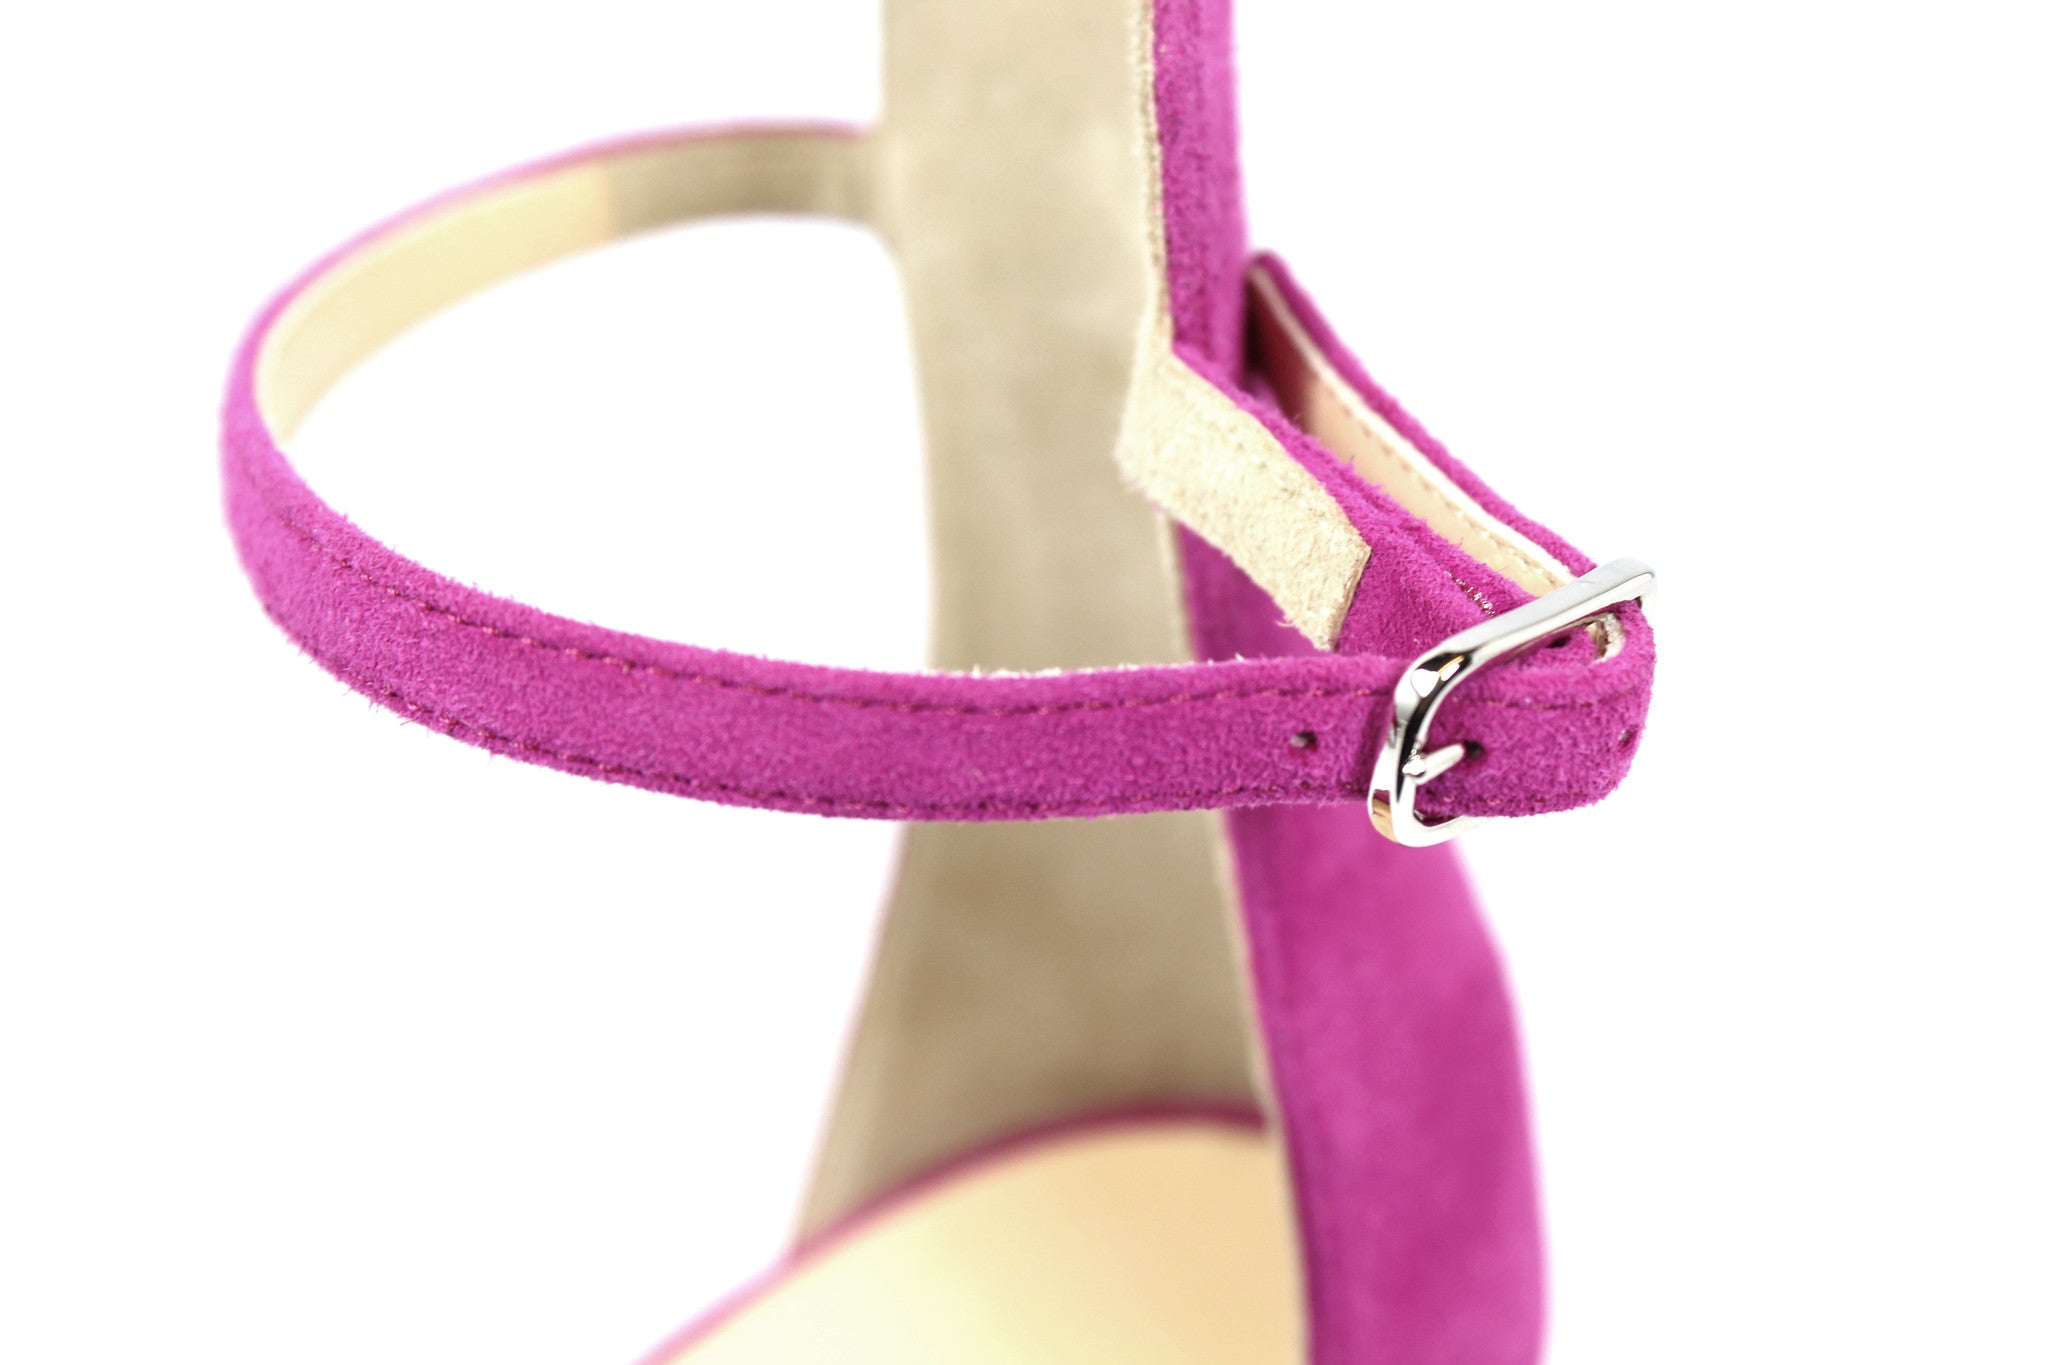 Barneys New York Fuchsia Suede Ankle Strap Sandals (Size 38.5) - Encore Consignment - 5